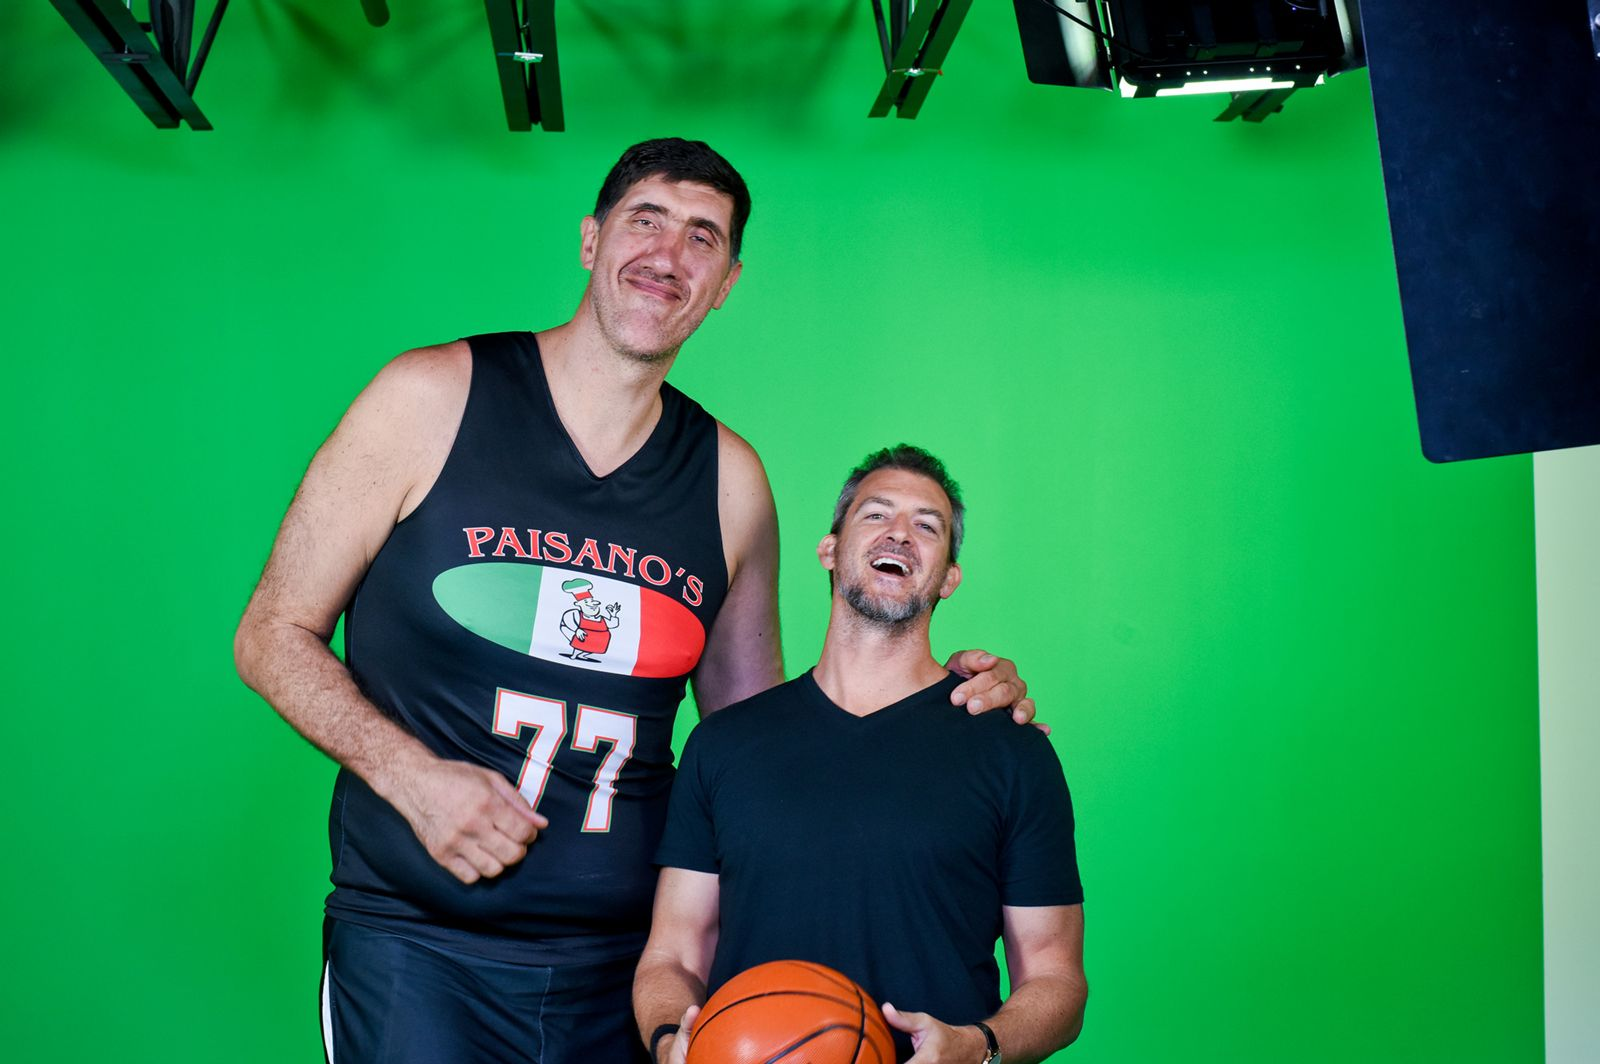 Muresan and Folliard